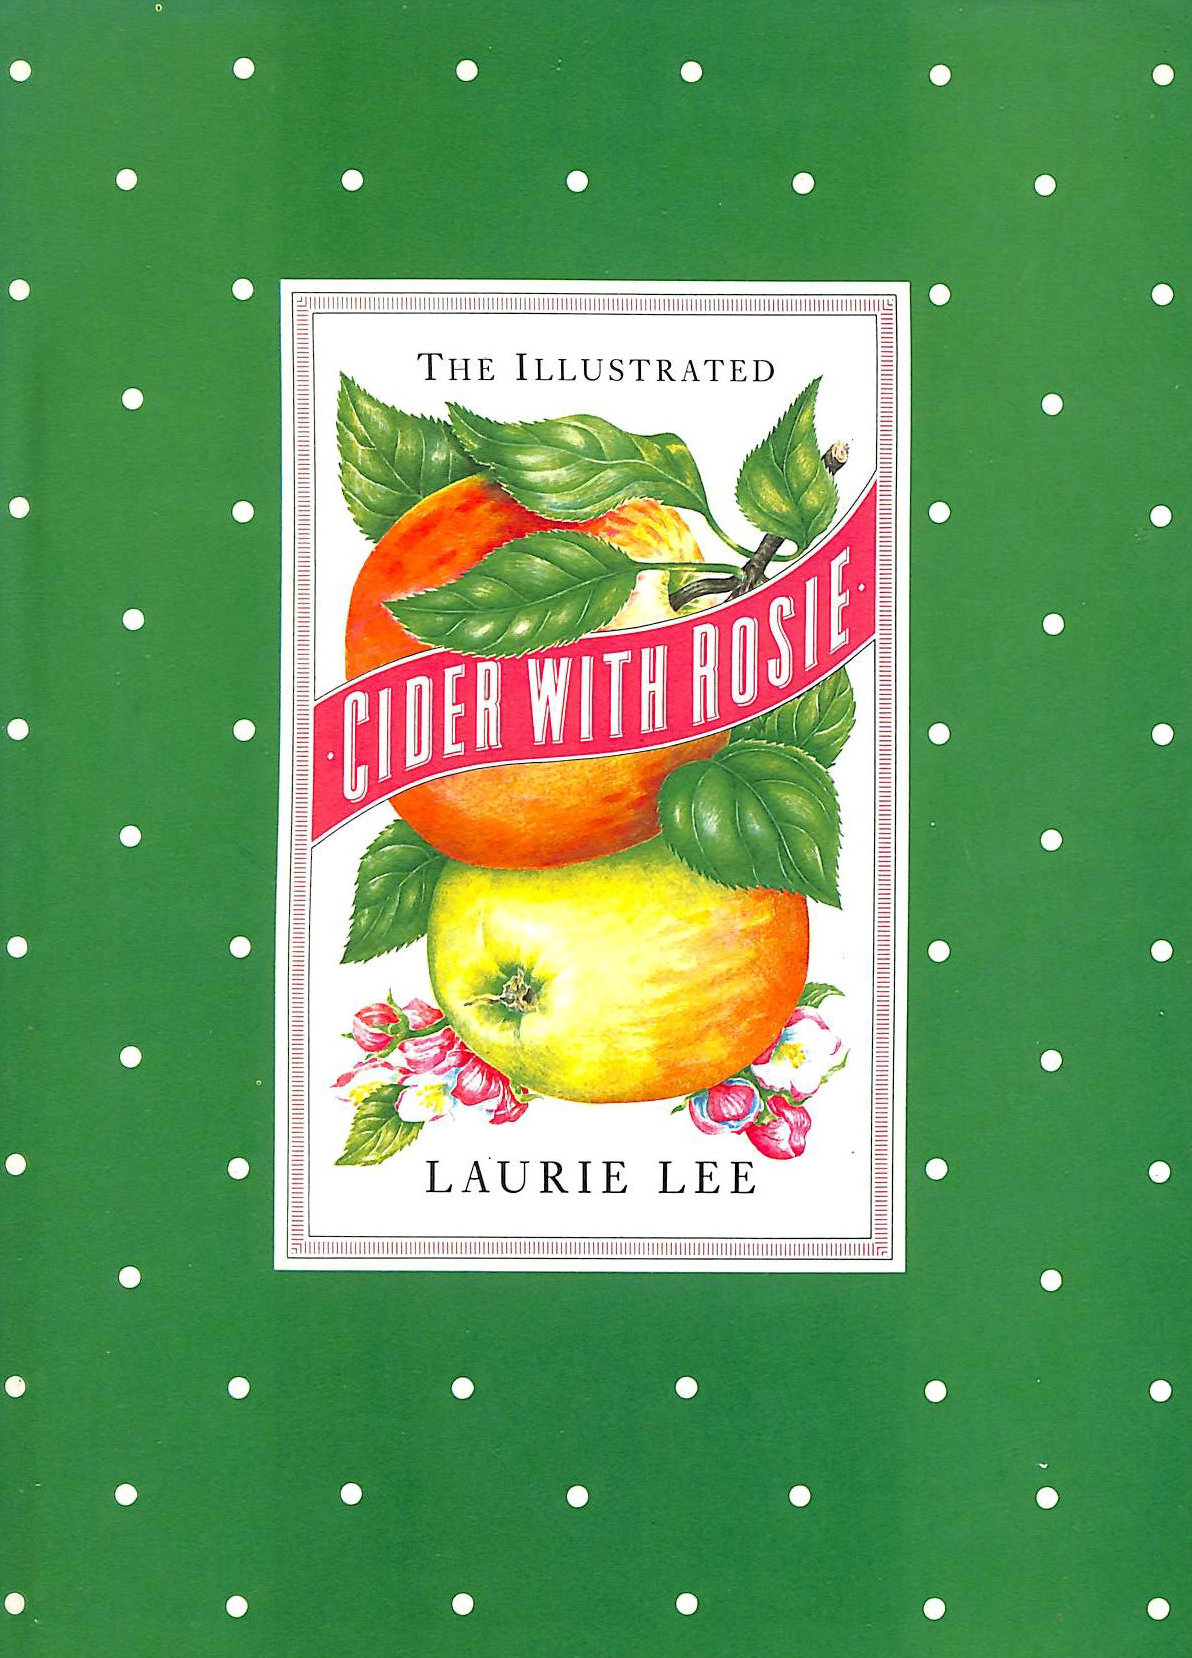 LEE, LAURIE - Cider with Rosie